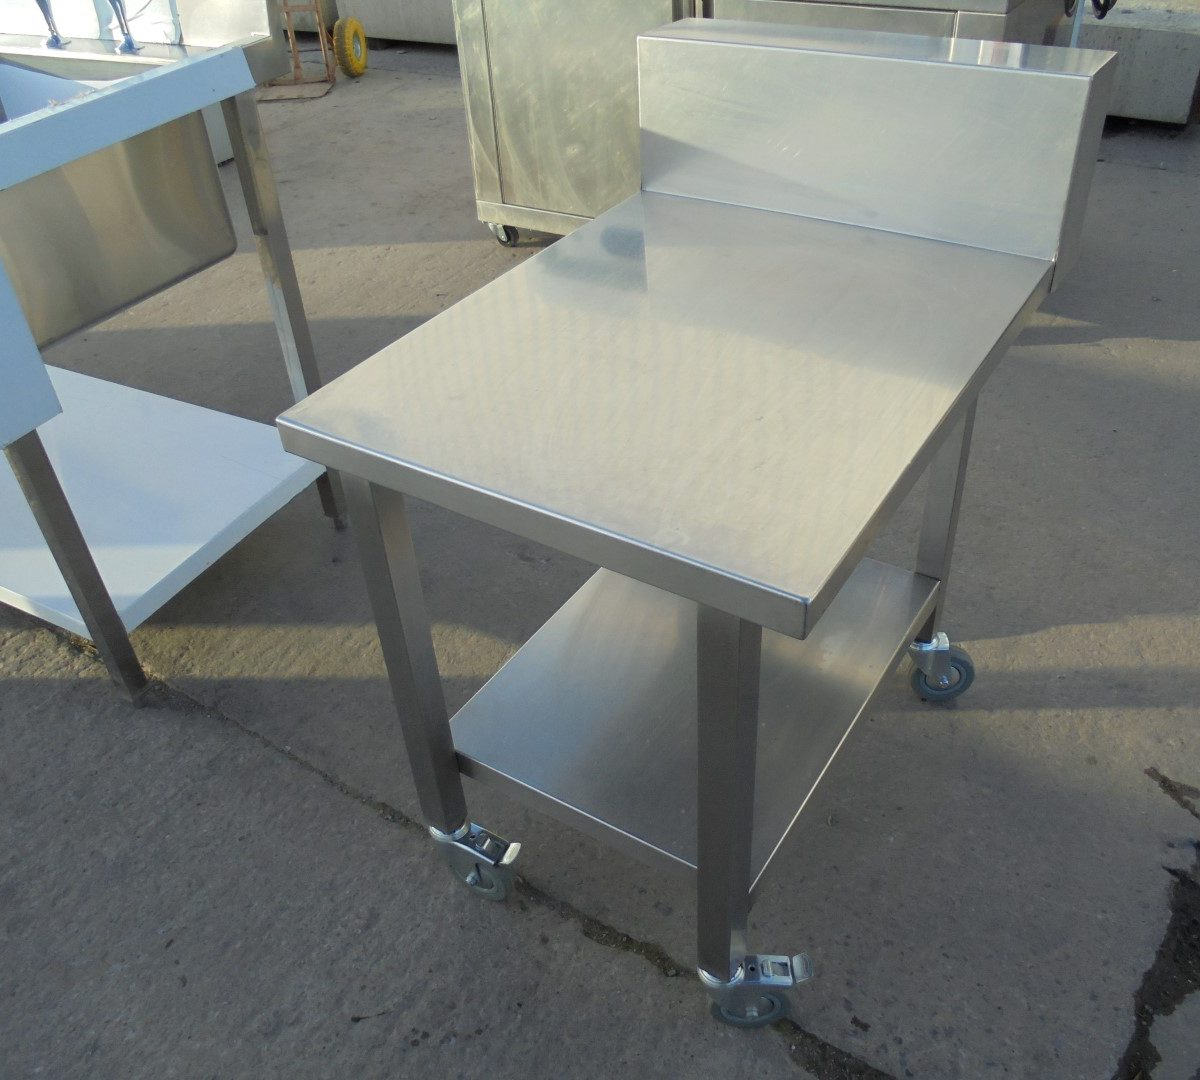 used stainless steel table stand 55cmw x 80cmd x 71cmh. Black Bedroom Furniture Sets. Home Design Ideas